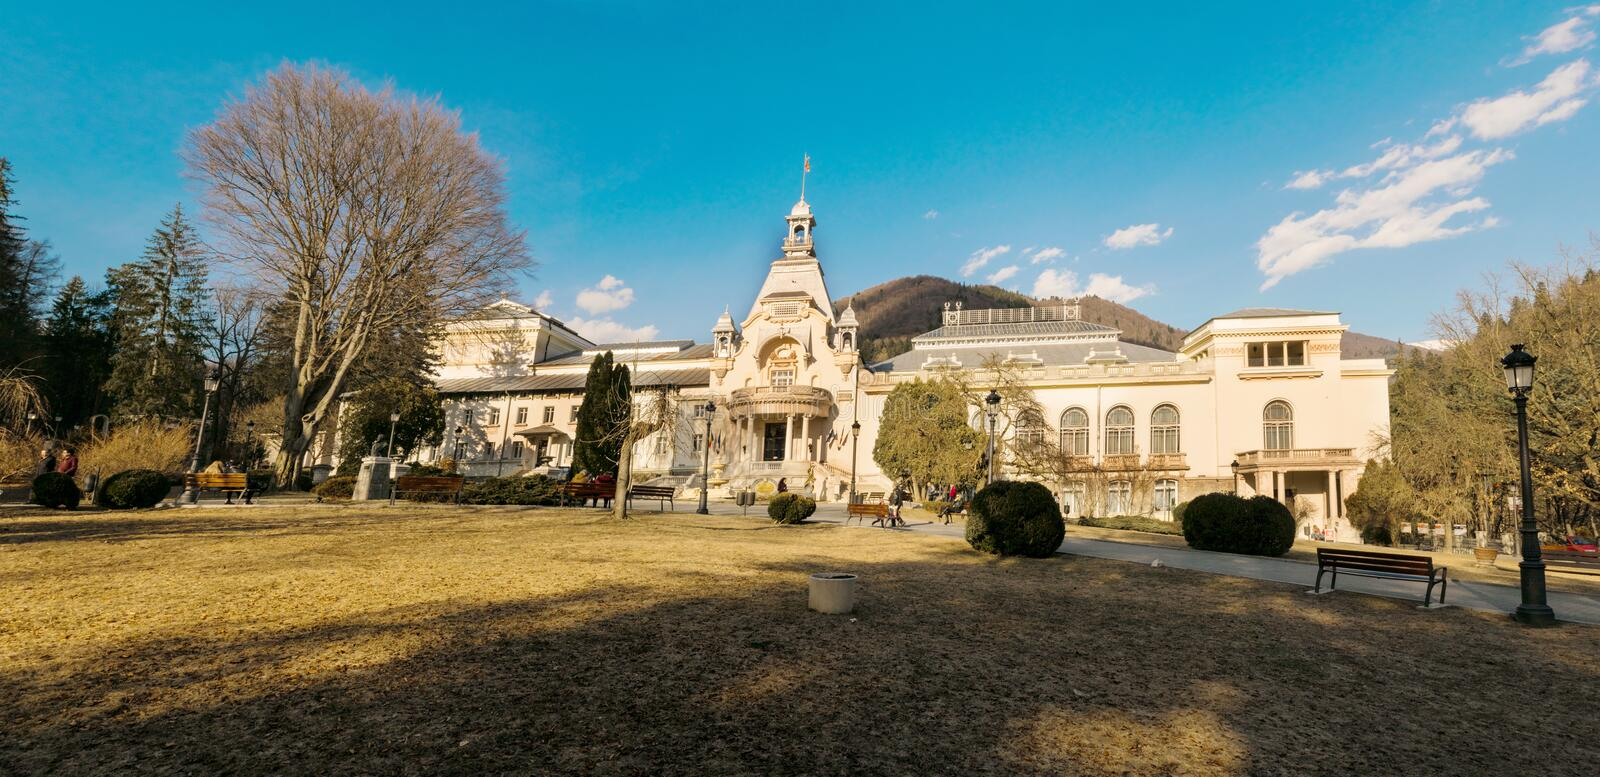 Sinaia, Romania - March 09, 2019: View of Casino Sinaia in Prahova county, Romania royalty free stock image